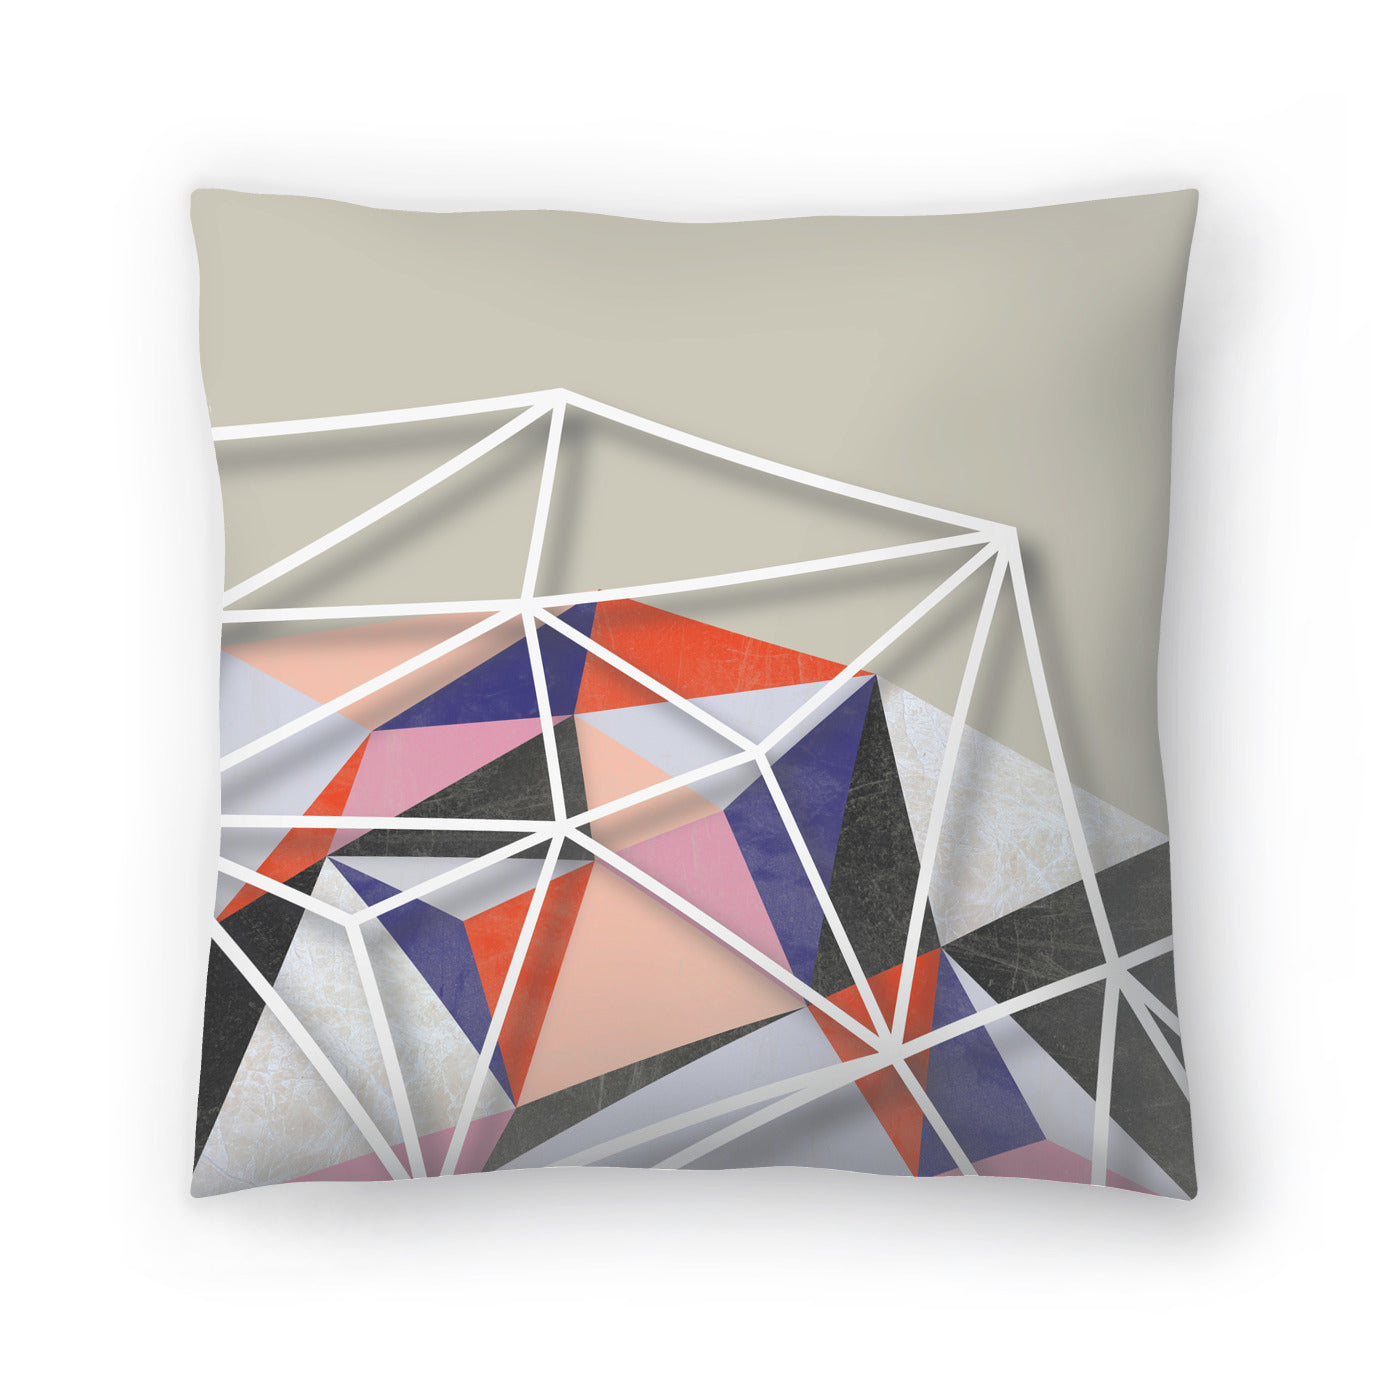 Fill & Stroke Vi by Susana Paz Decorative Pillow - Decorative Pillow - Americanflat